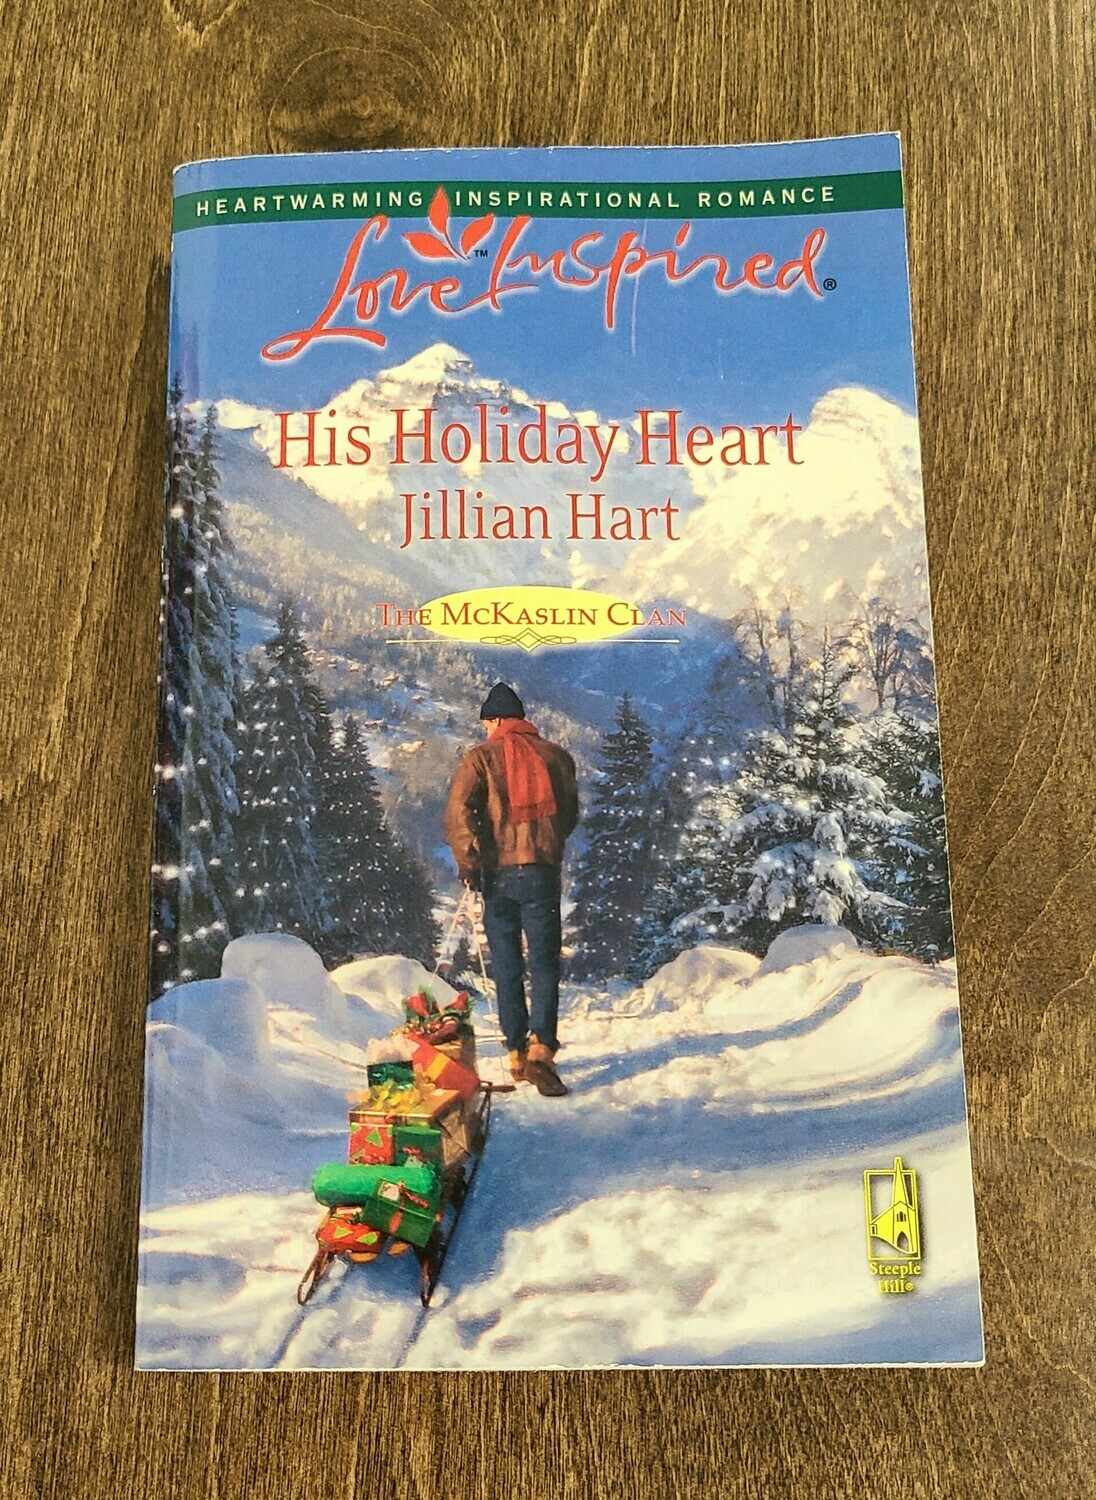 His Holiday Heart by Jillian Hart